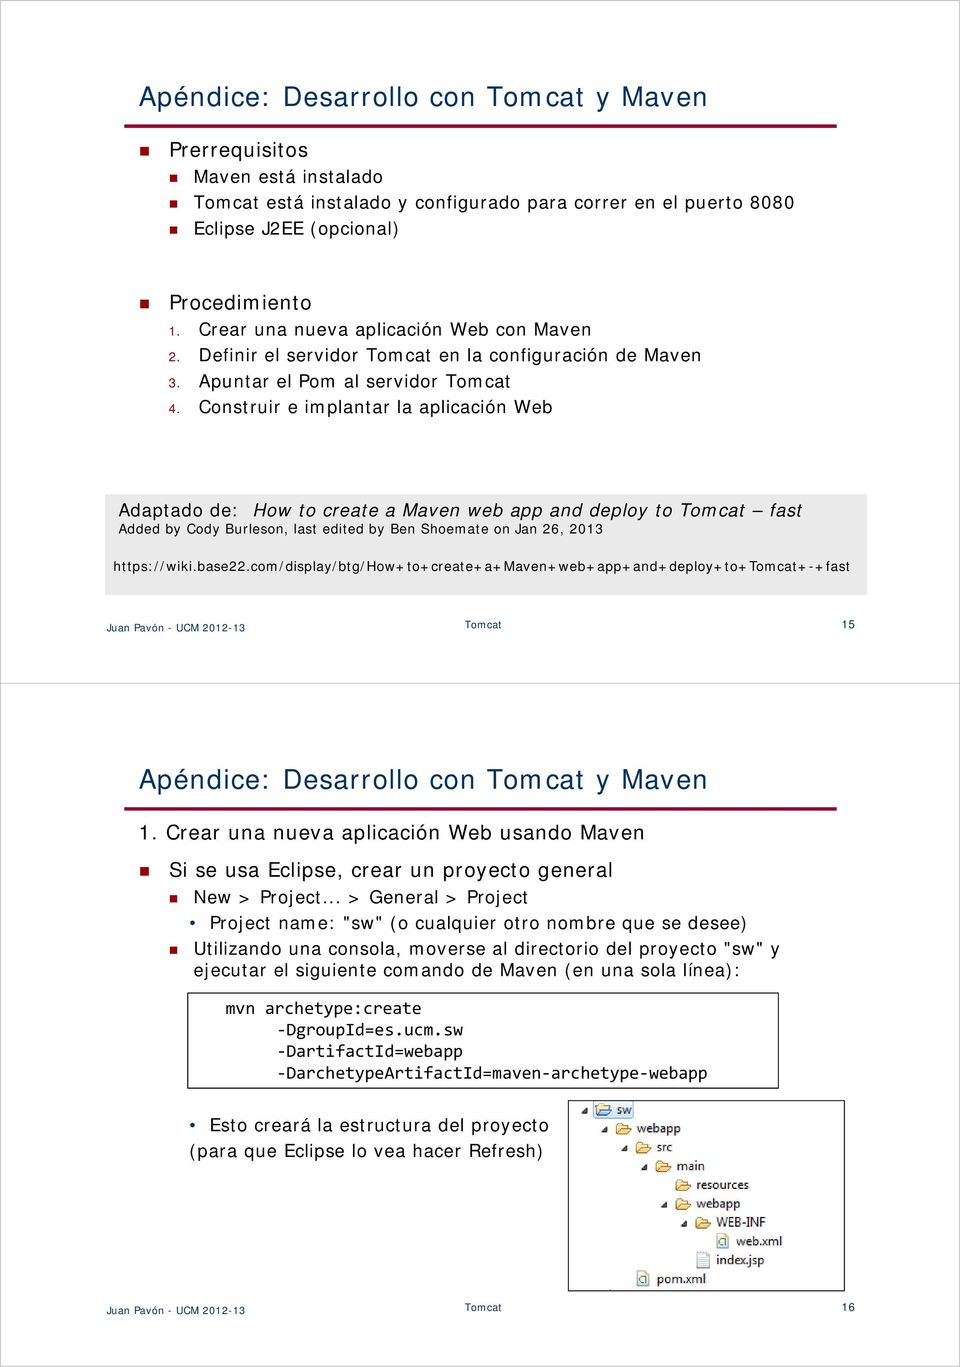 Construir e implantar la aplicación Web Adaptado de: How to create a Maven web app and deploy to Tomcat fast Added by Cody Burleson, last edited by Ben Shoemate on Jan 26, 2013 https://wiki.base22.